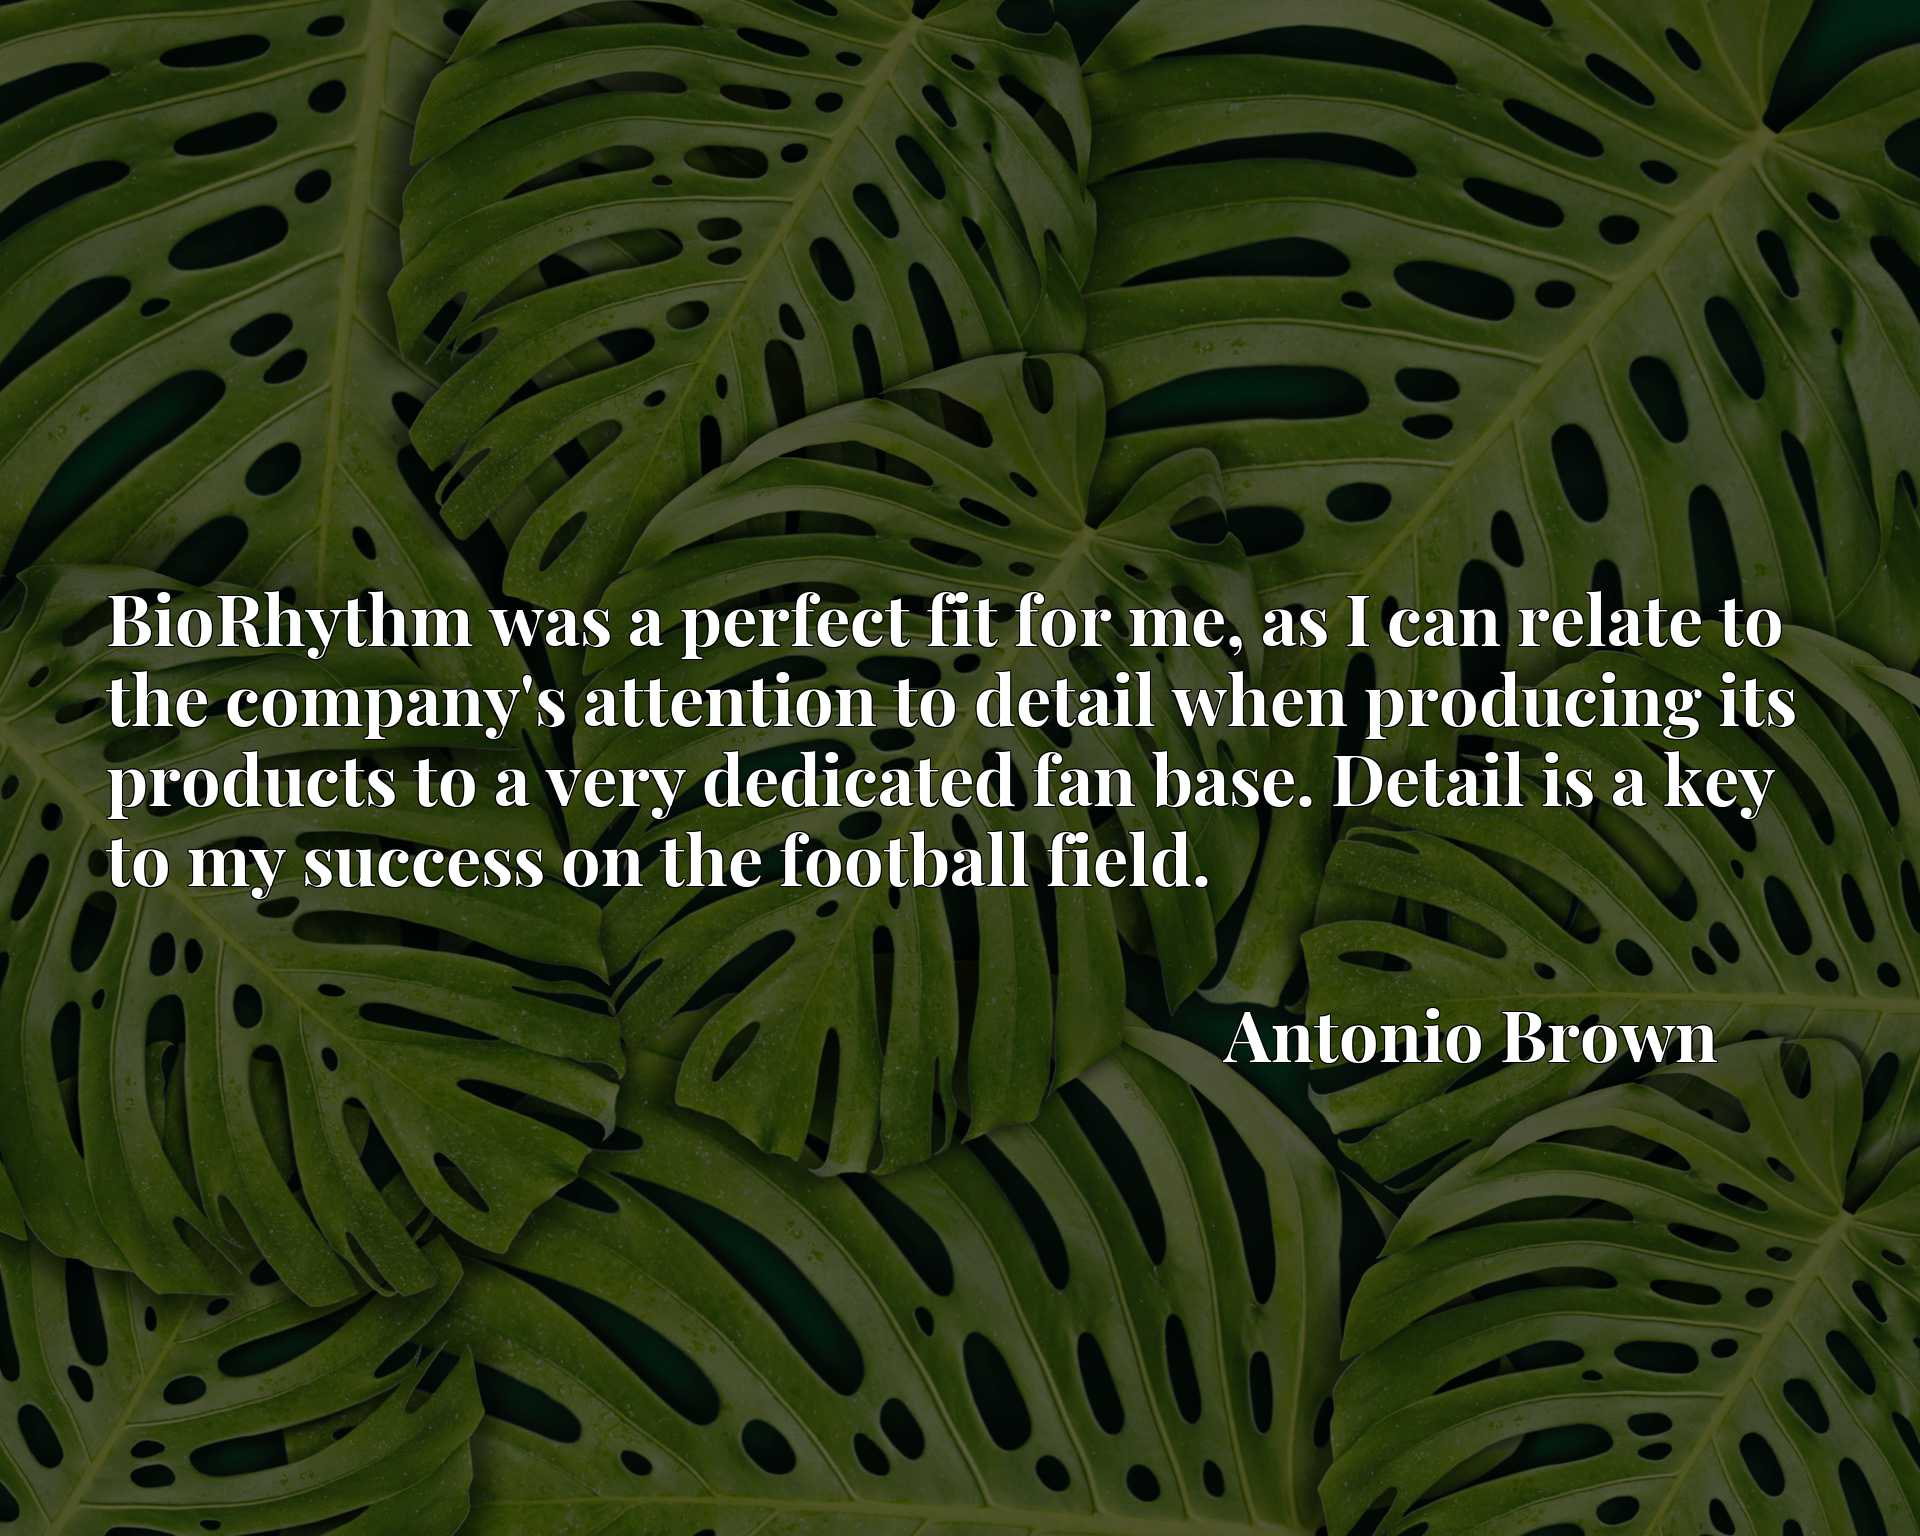 BioRhythm was a perfect fit for me, as I can relate to the company's attention to detail when producing its products to a very dedicated fan base. Detail is a key to my success on the football field.